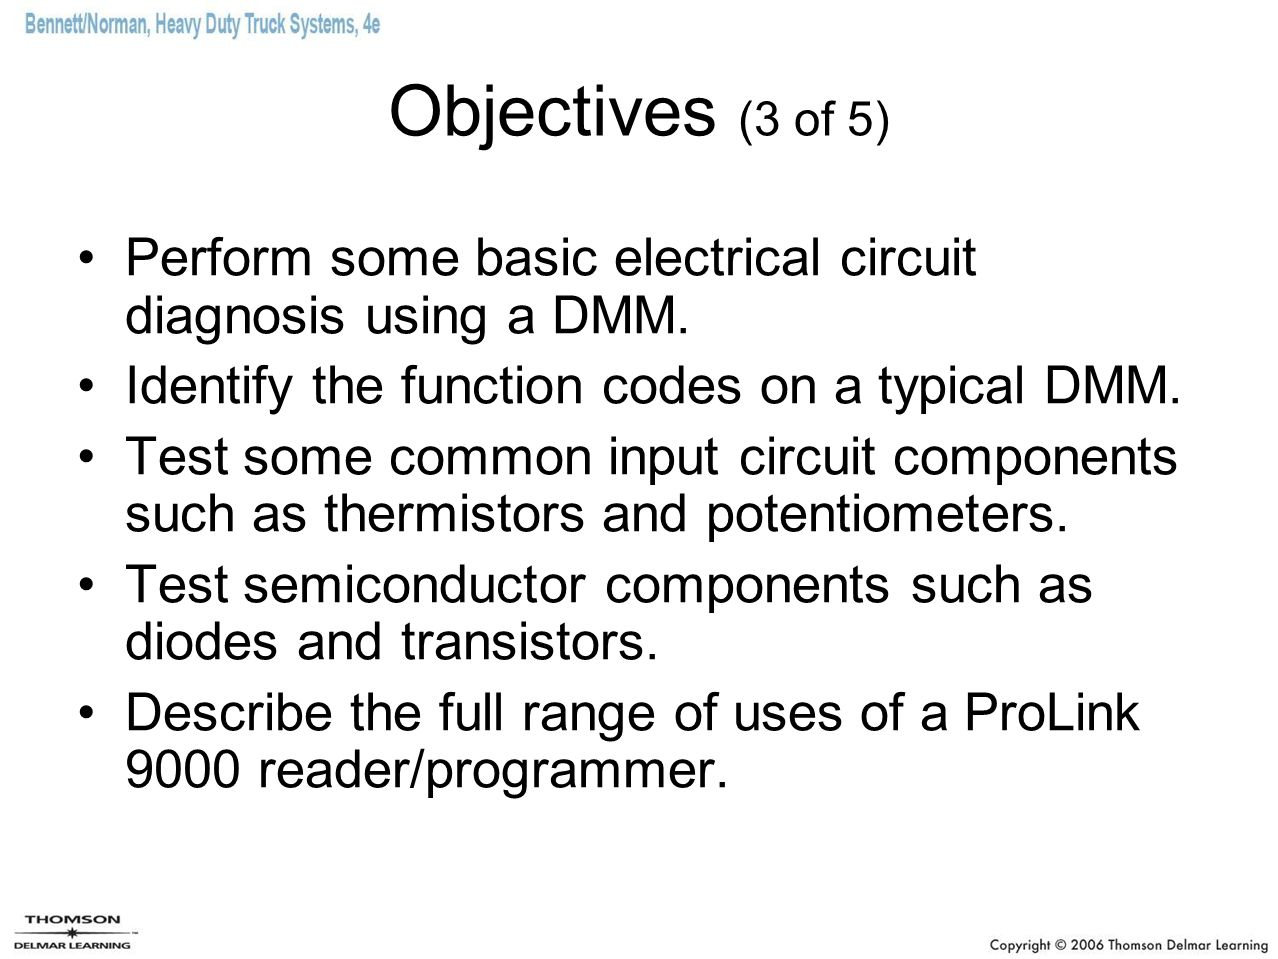 Objectives (3 of 5) Perform some basic electrical circuit diagnosis using a DMM. Identify the function codes on a typical DMM.